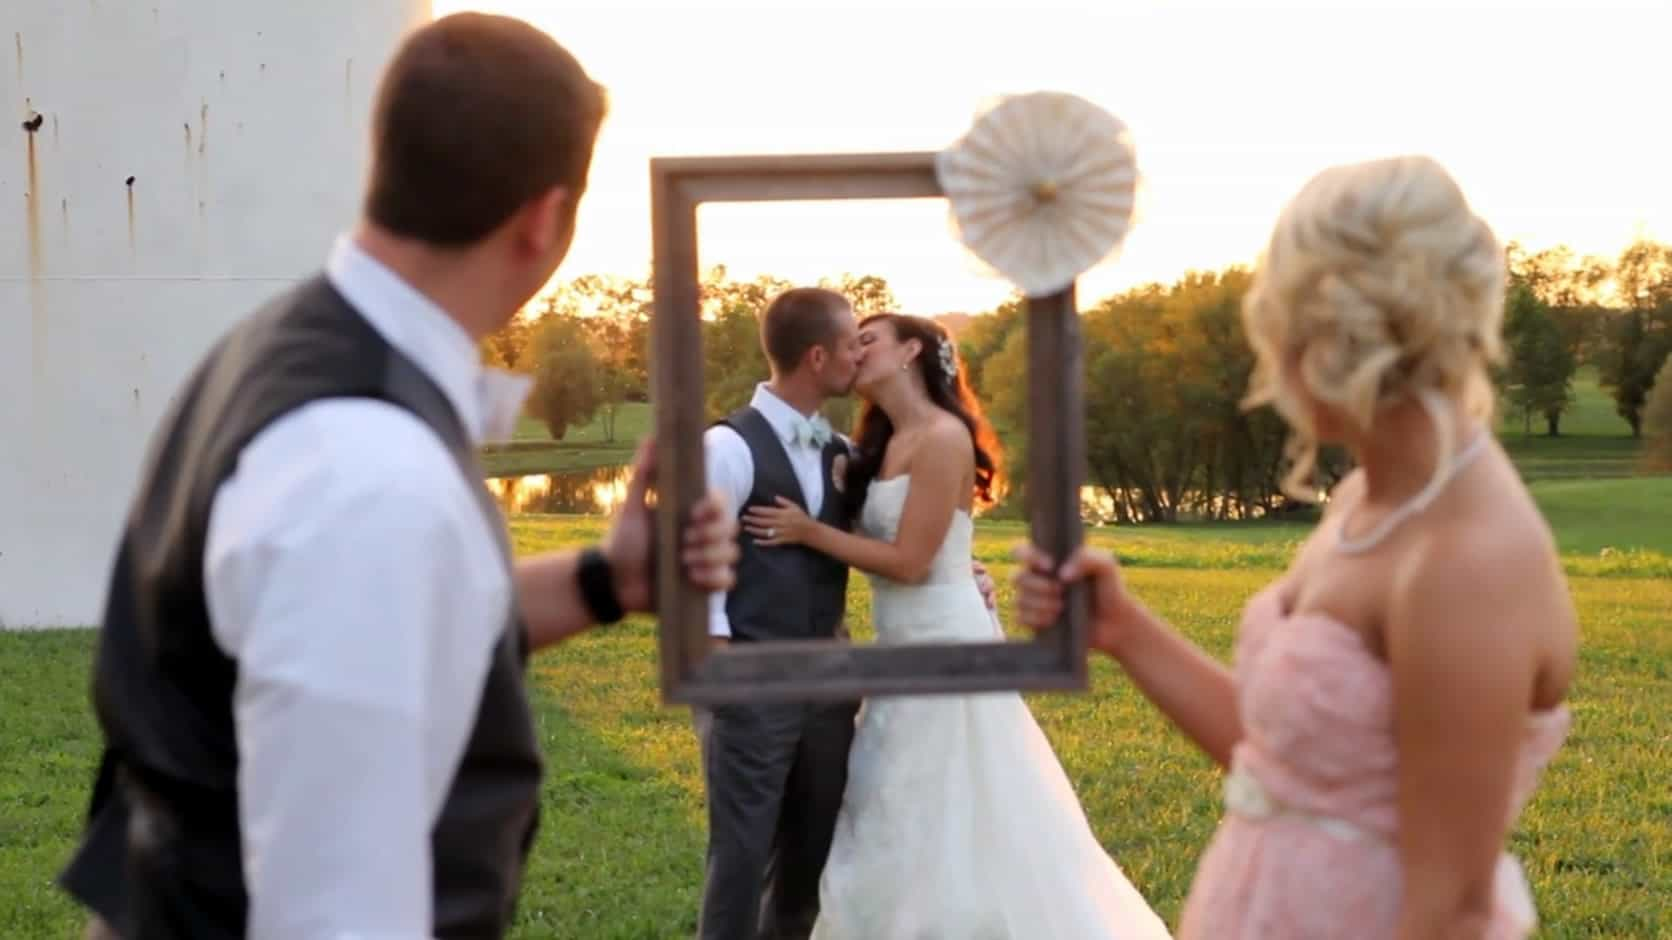 Wedding Video Highlights: Corey + Roxanne